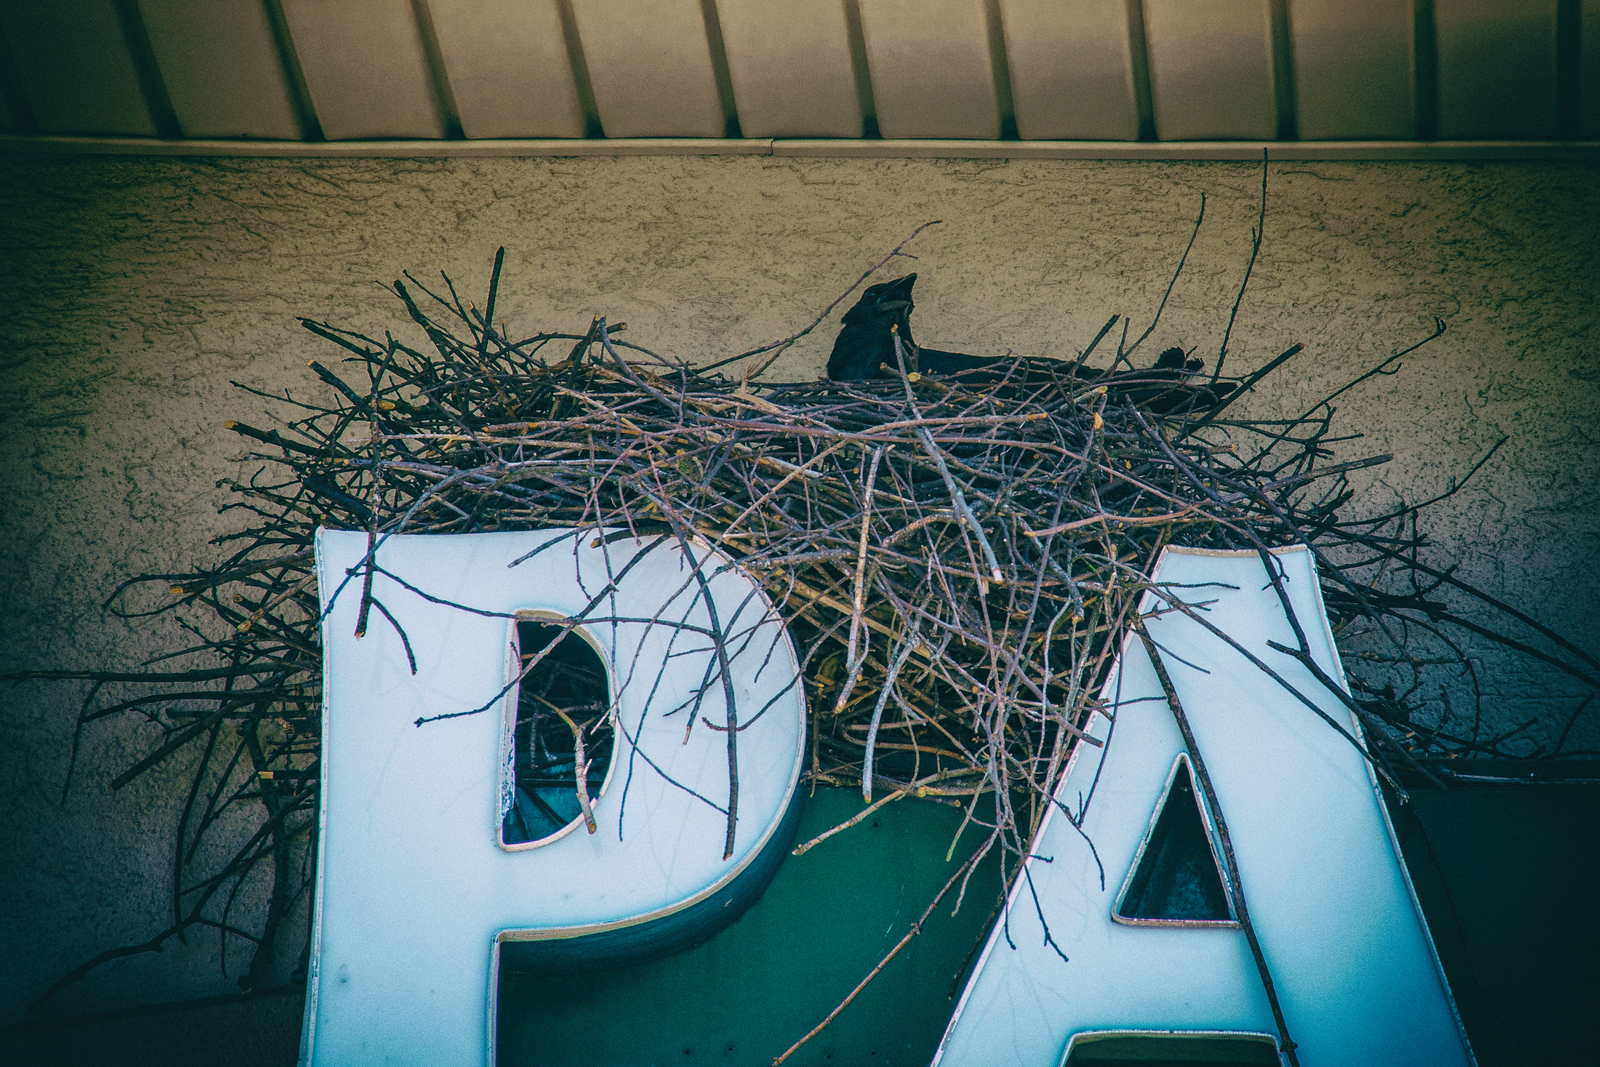 Black bird found a home on awning sign